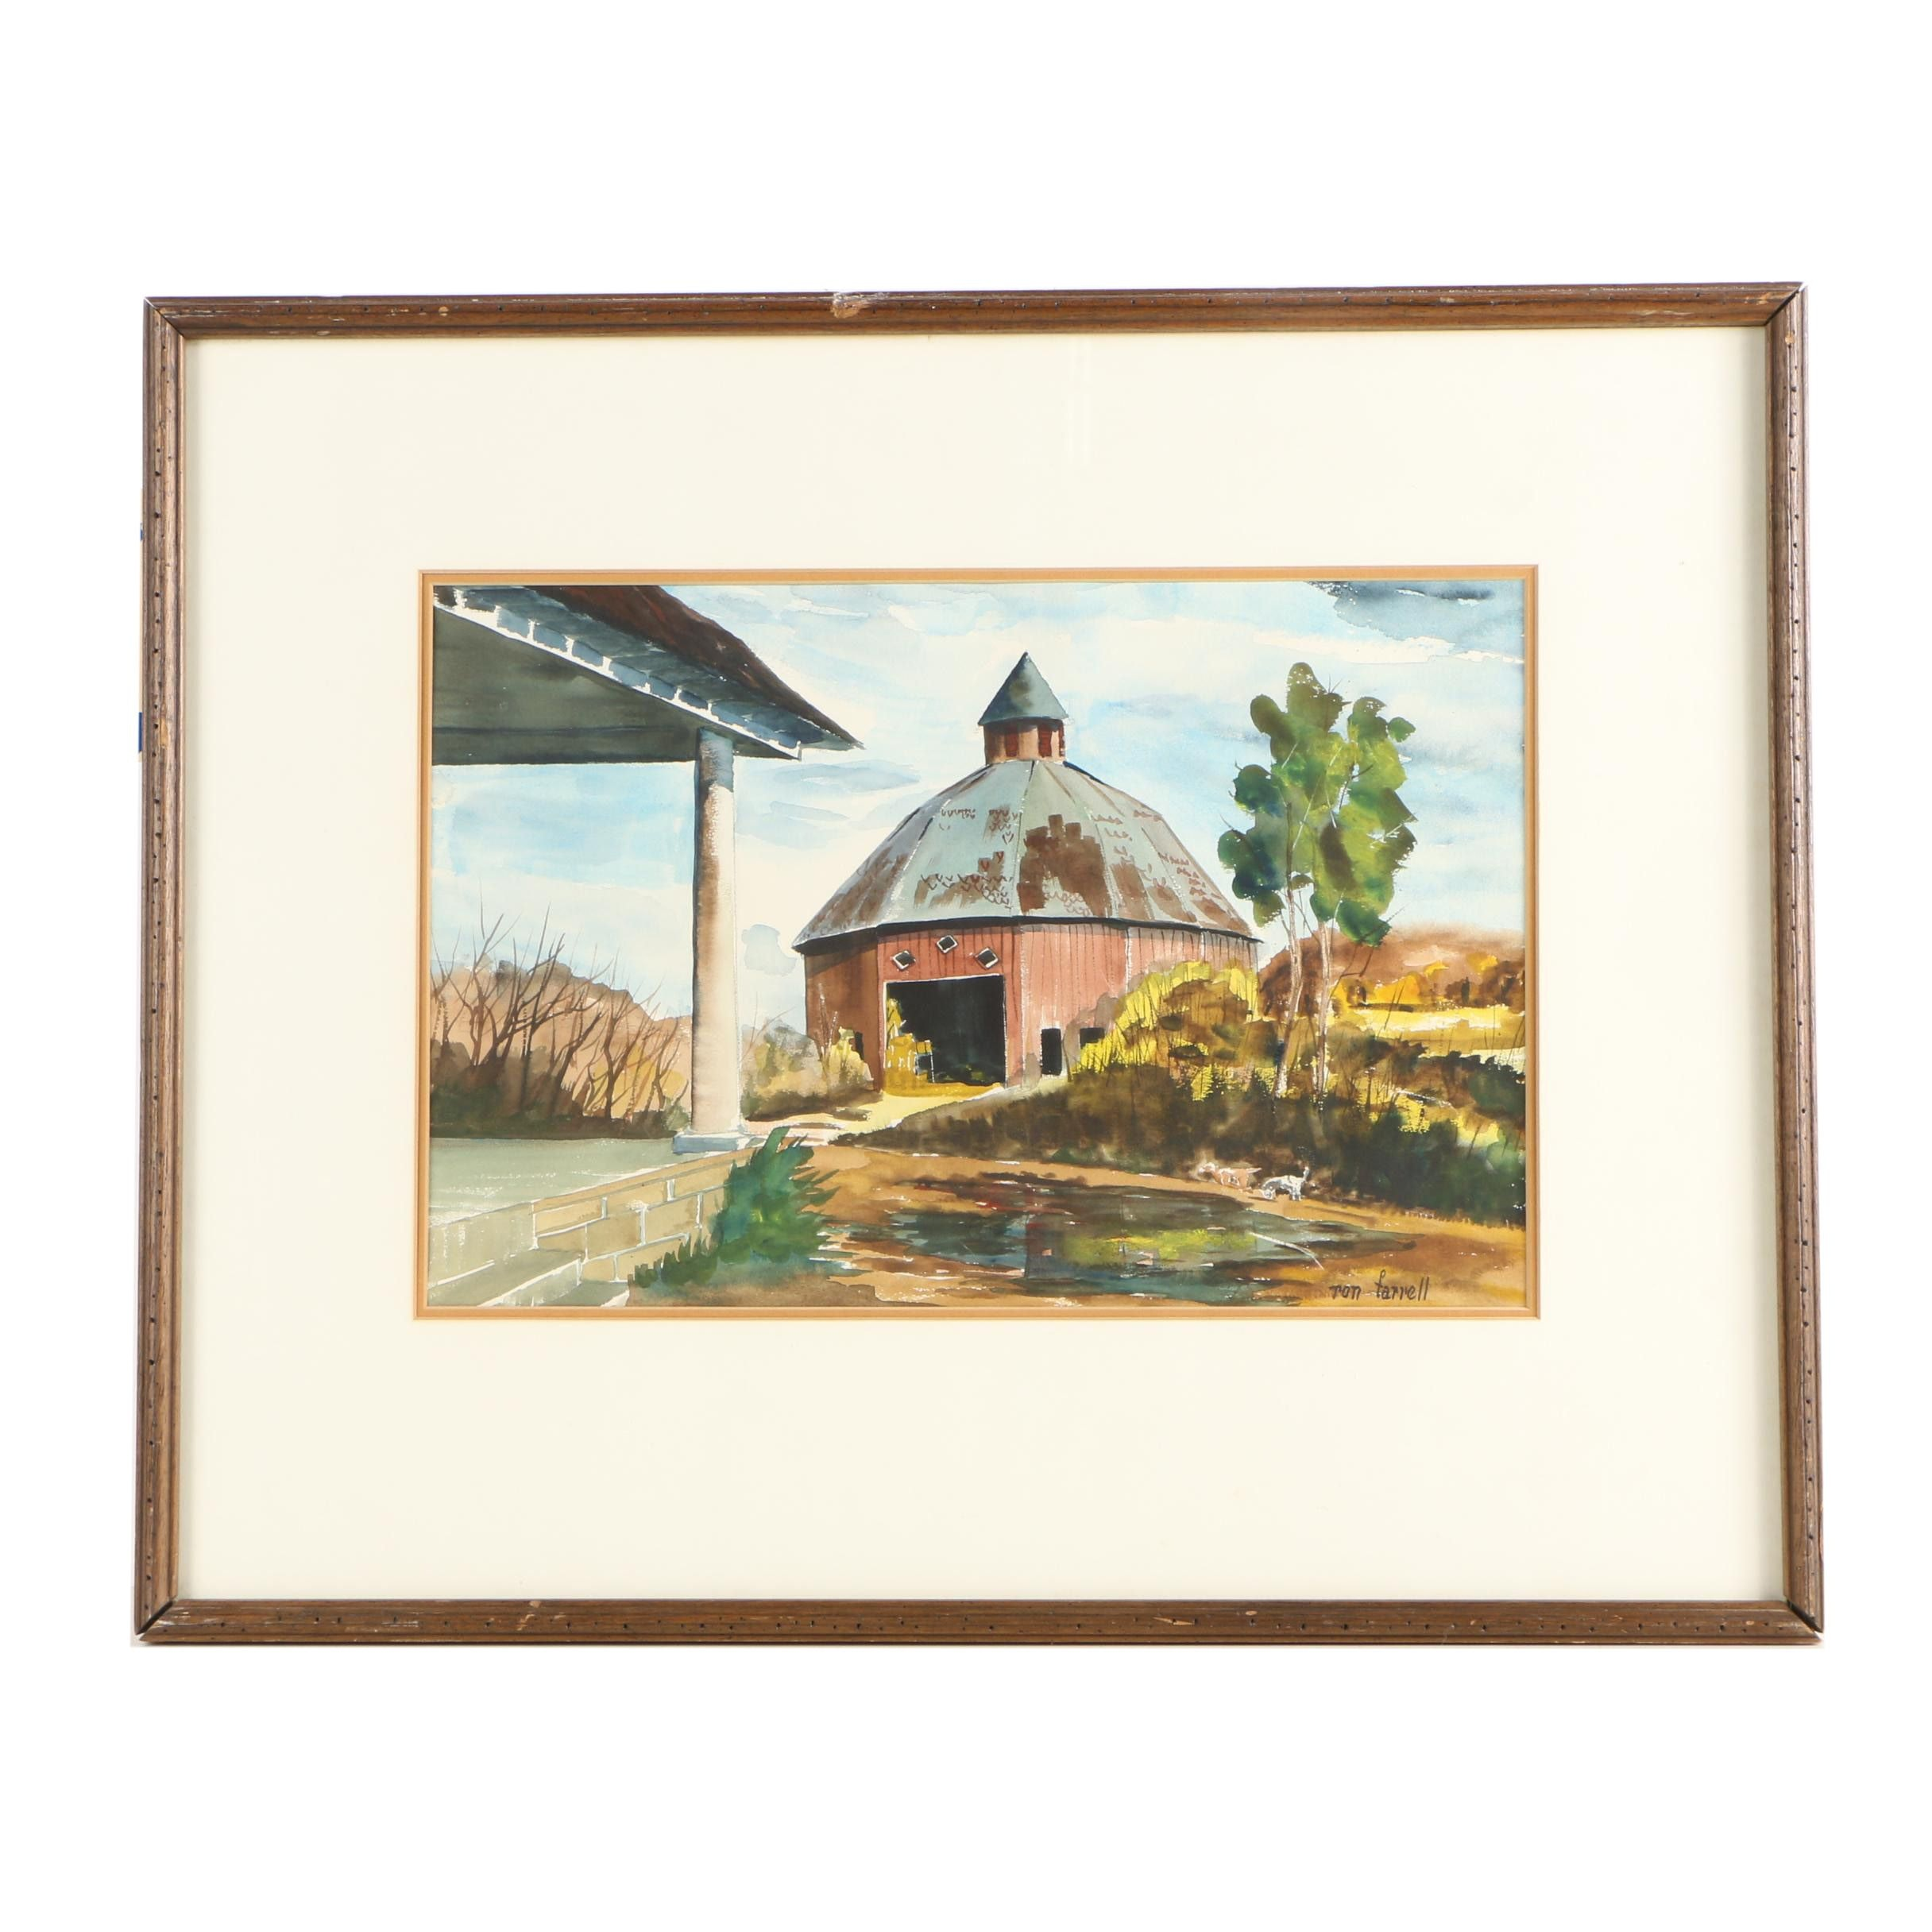 Ron Farrell Watercolor Painting of Rural Landscape with Round Barn